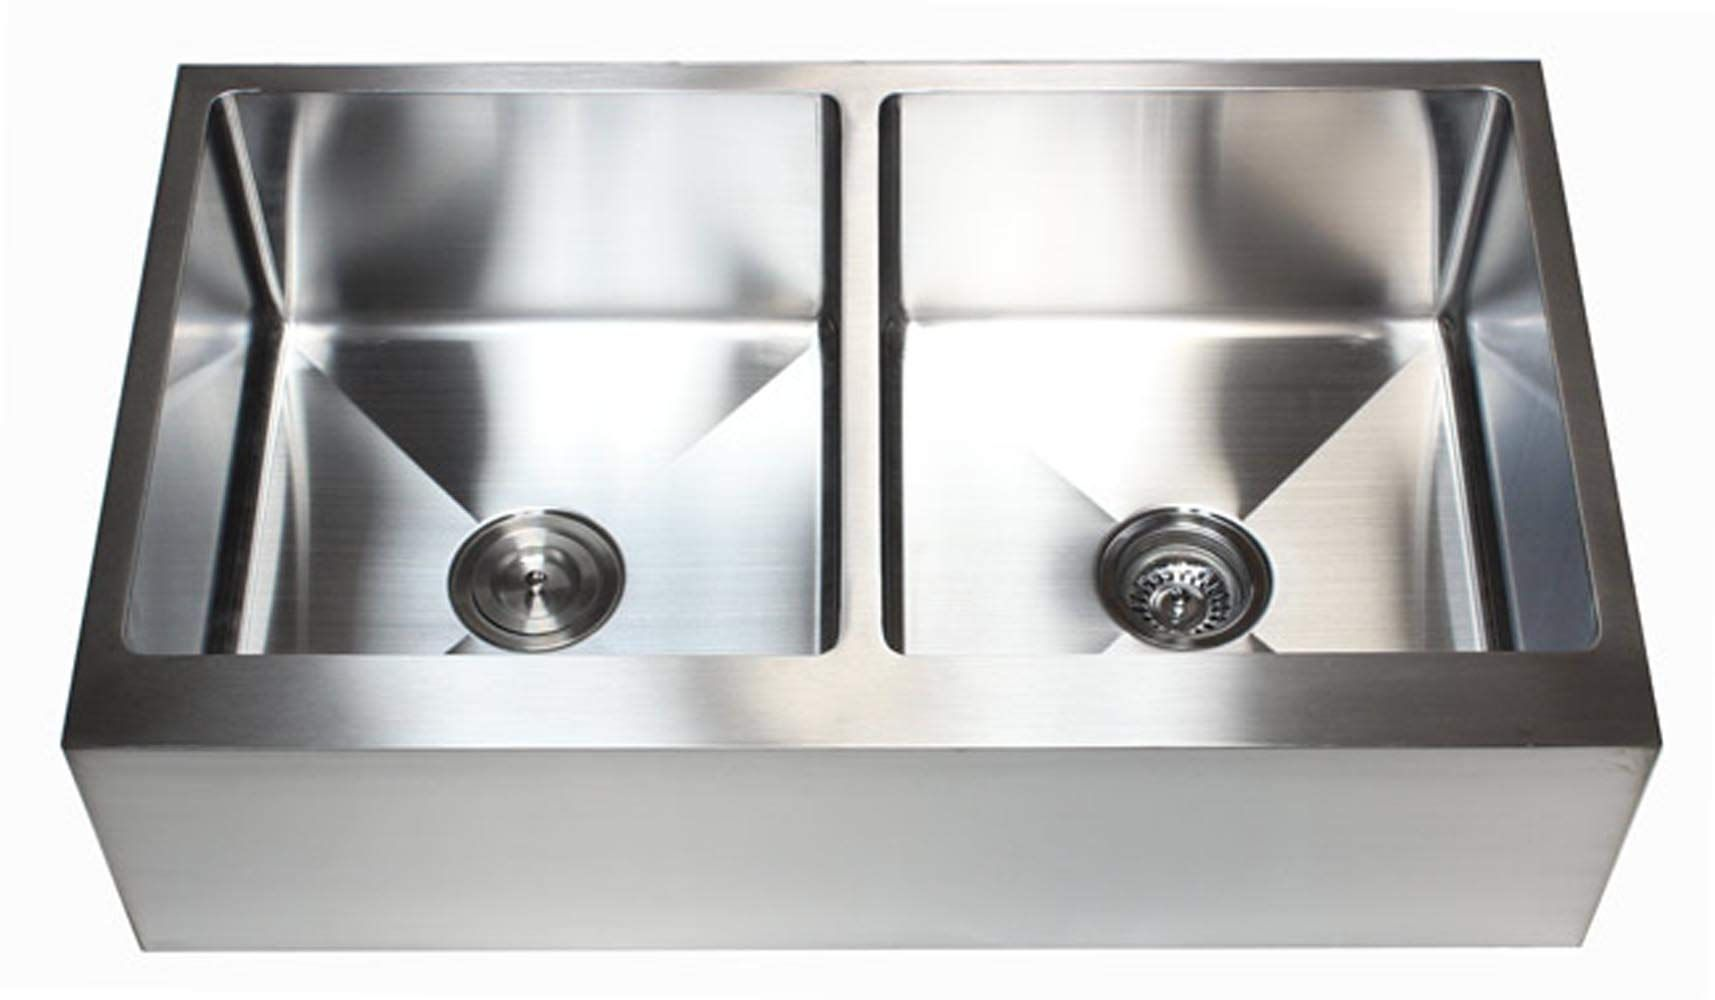 36 inch farmhouse apron front stainless steel kitchen sink